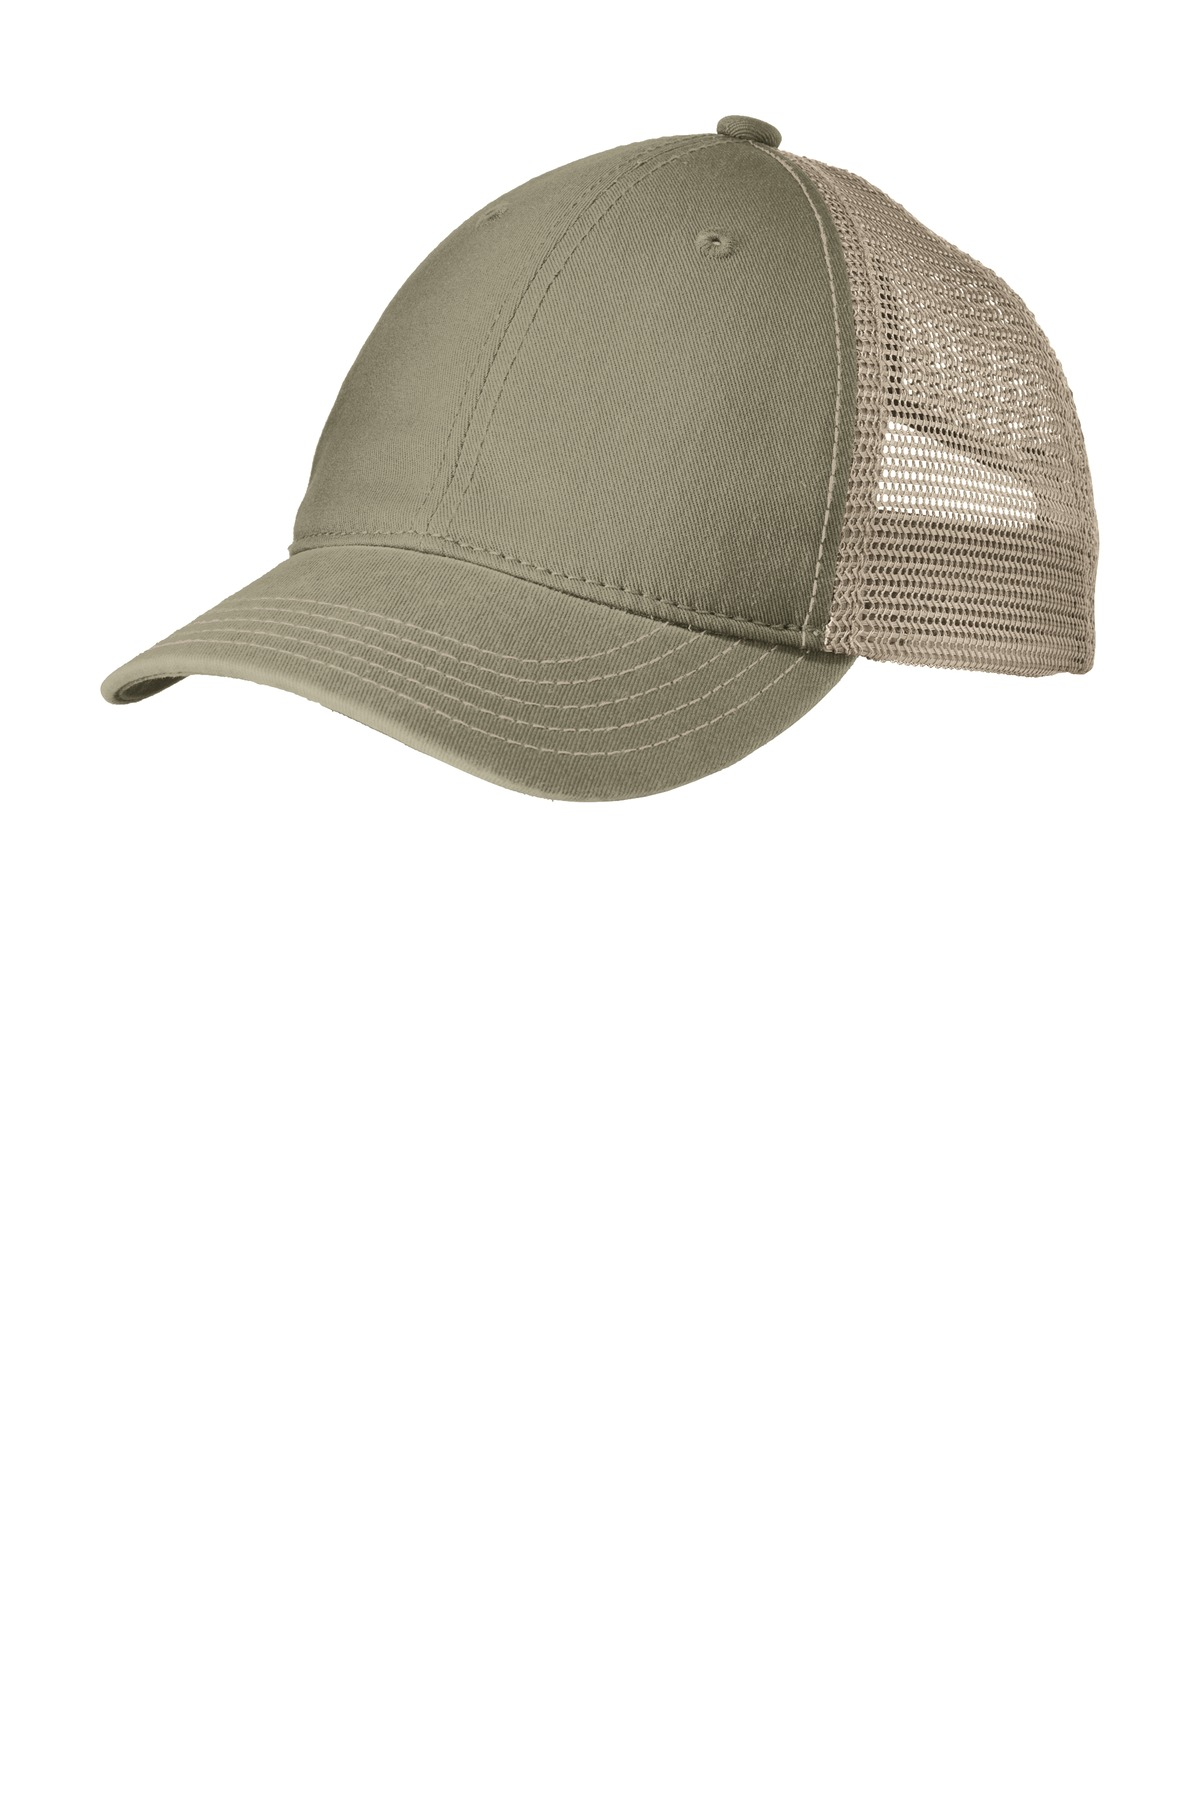 District ®  Super Soft Mesh Back Cap. DT630 - Olive/ Khaki